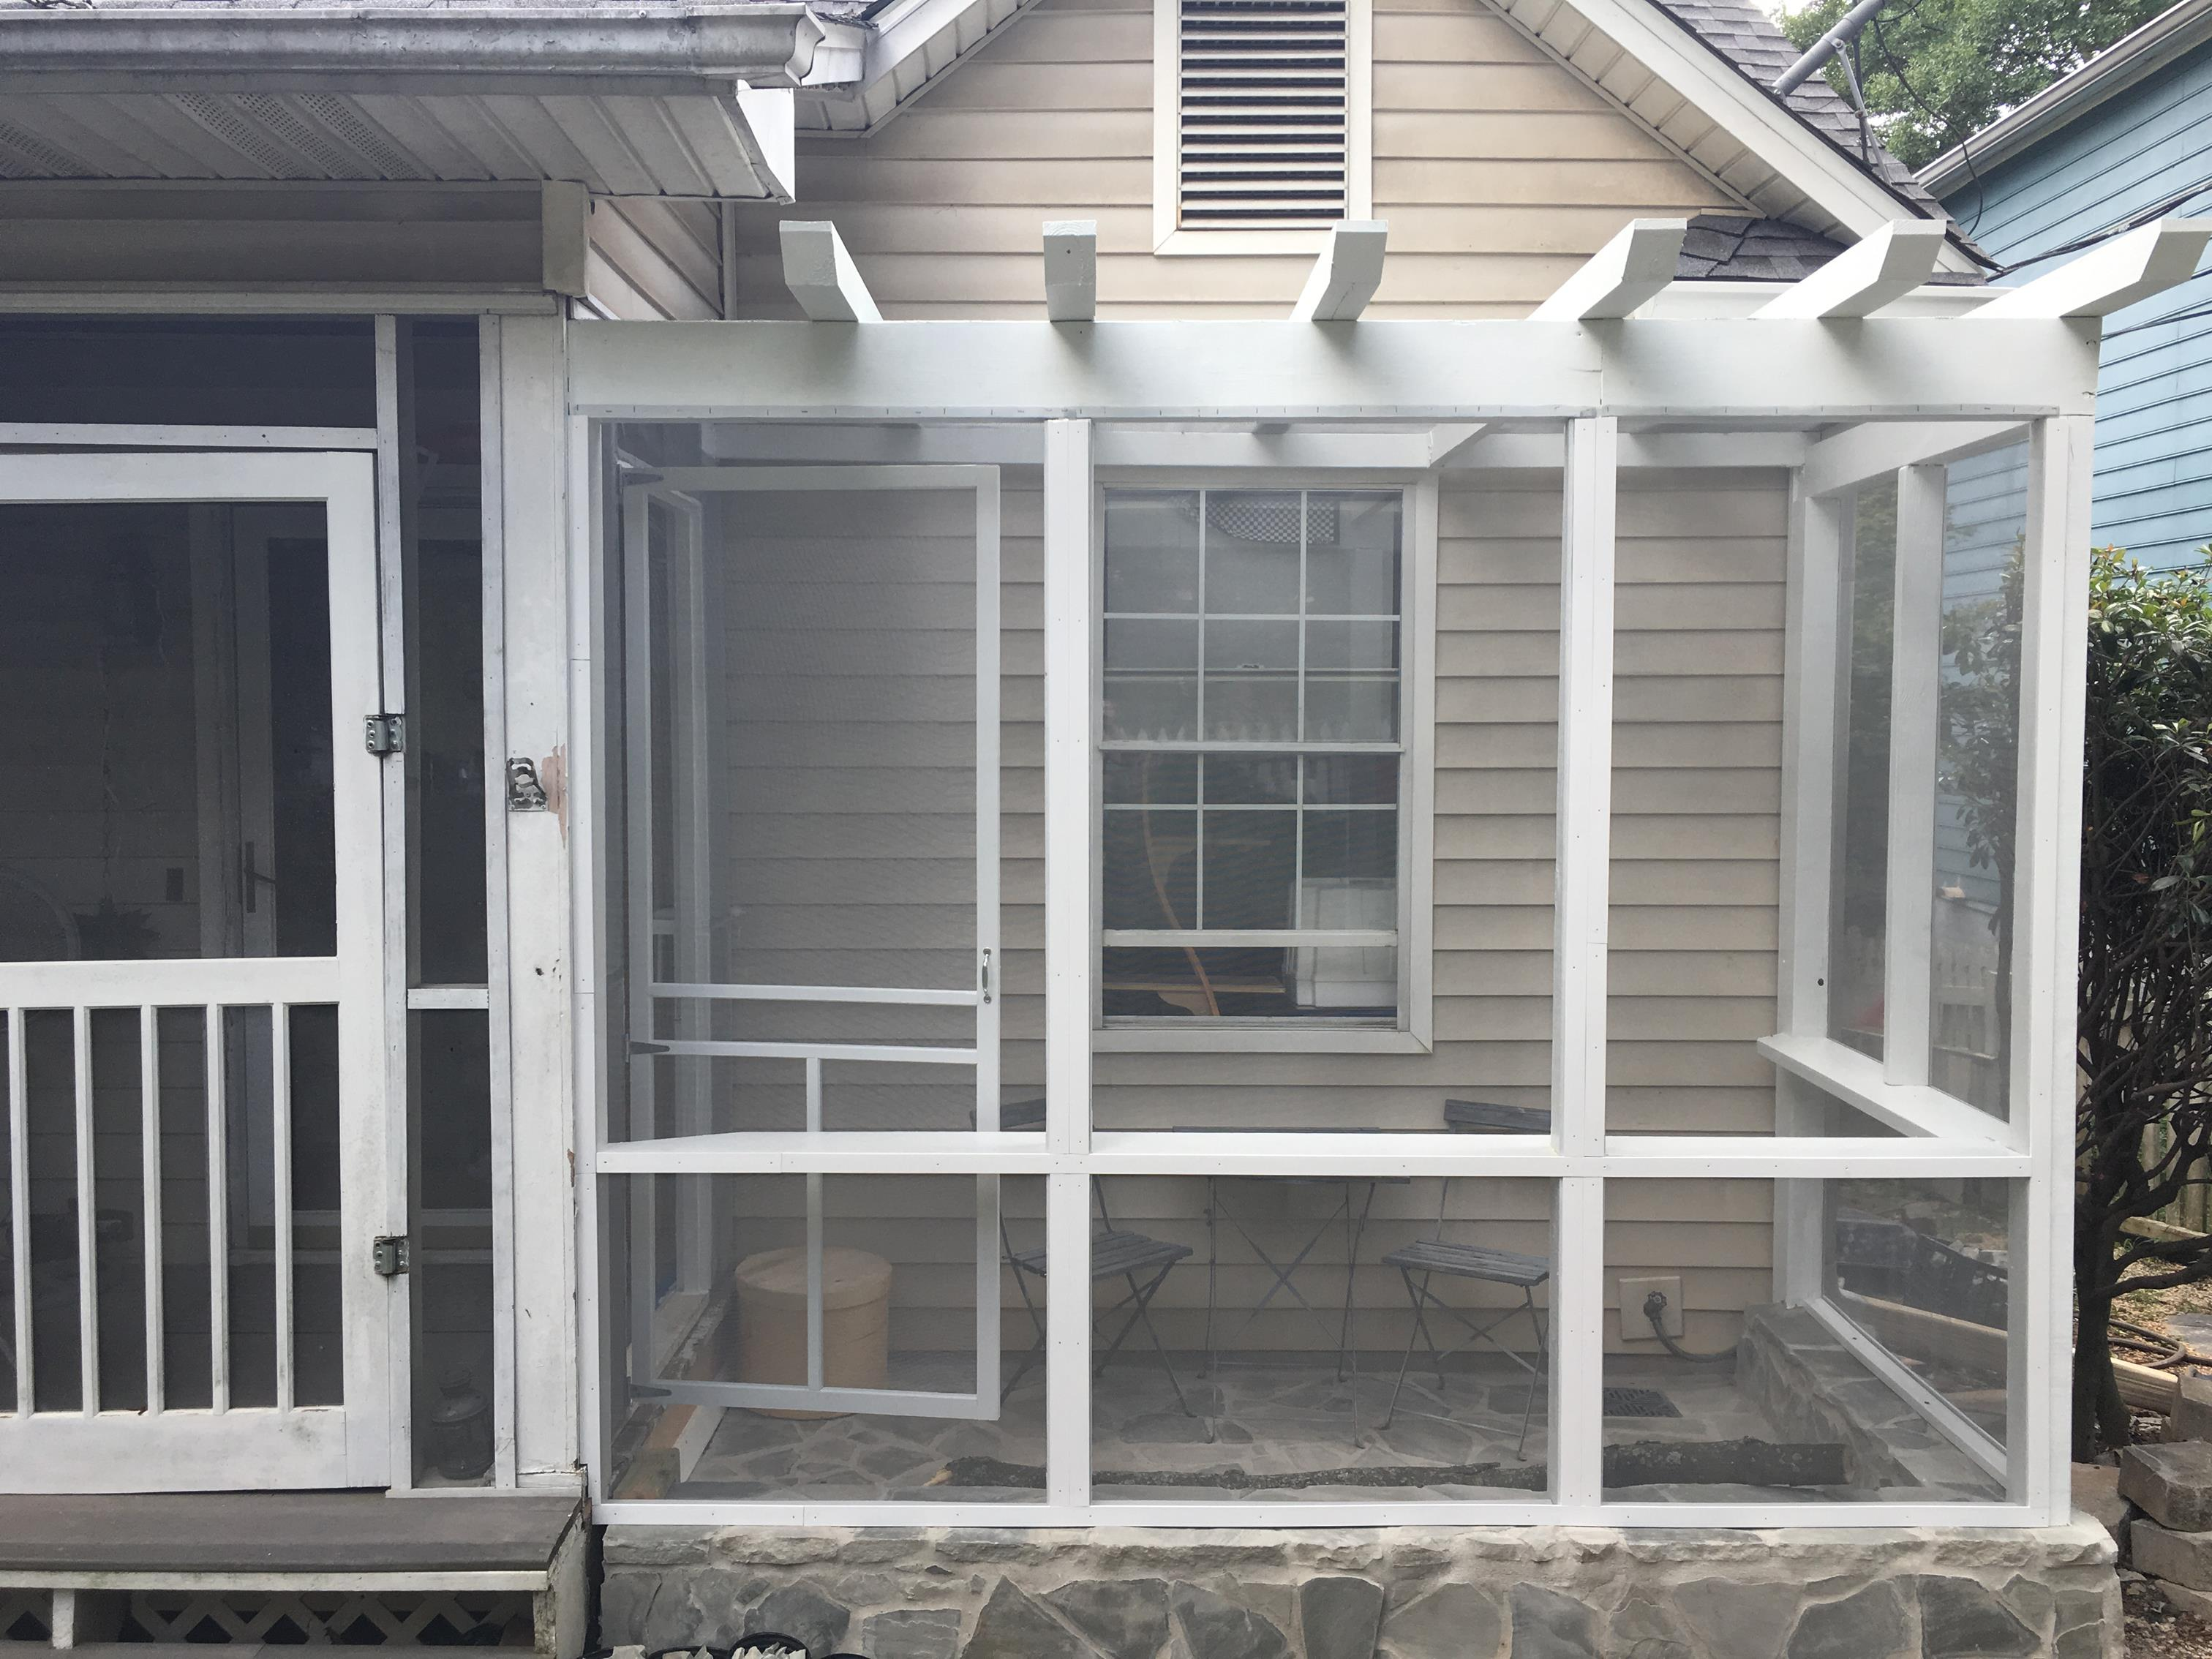 Open window, screen removed allows access.